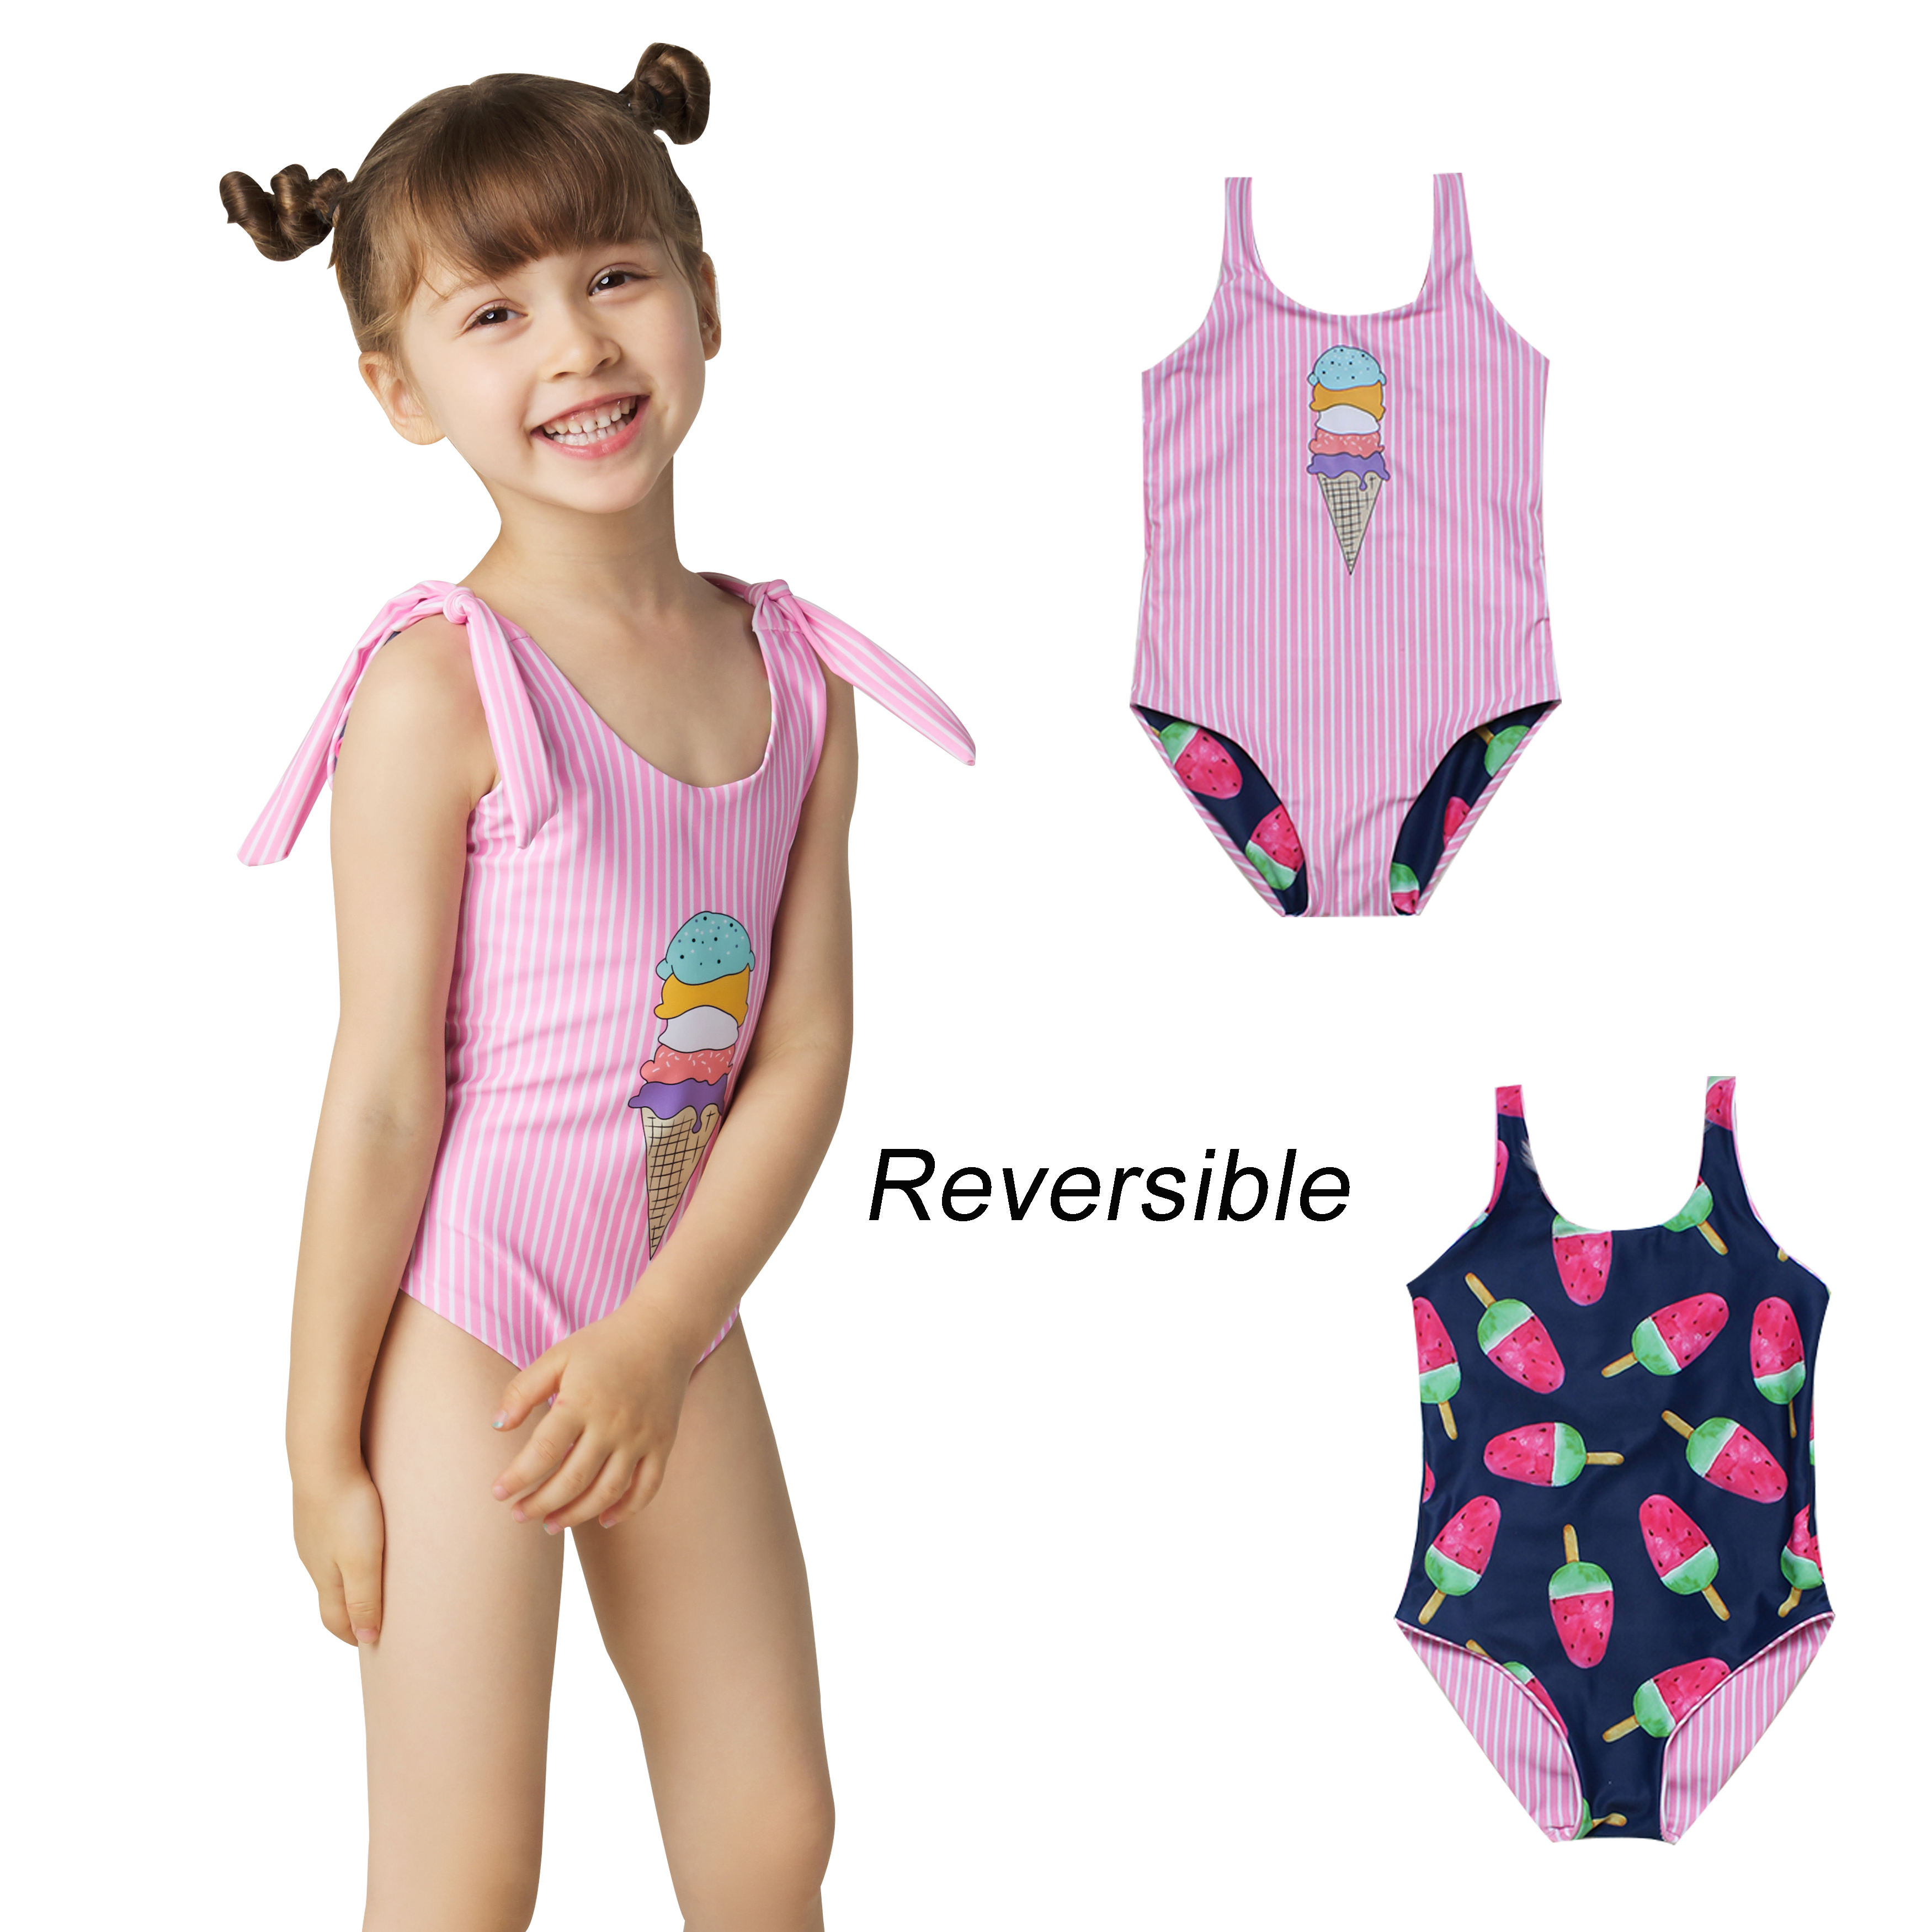 Reversible Children Swimsuit Custom One Piece For Girls Kids Swimwear